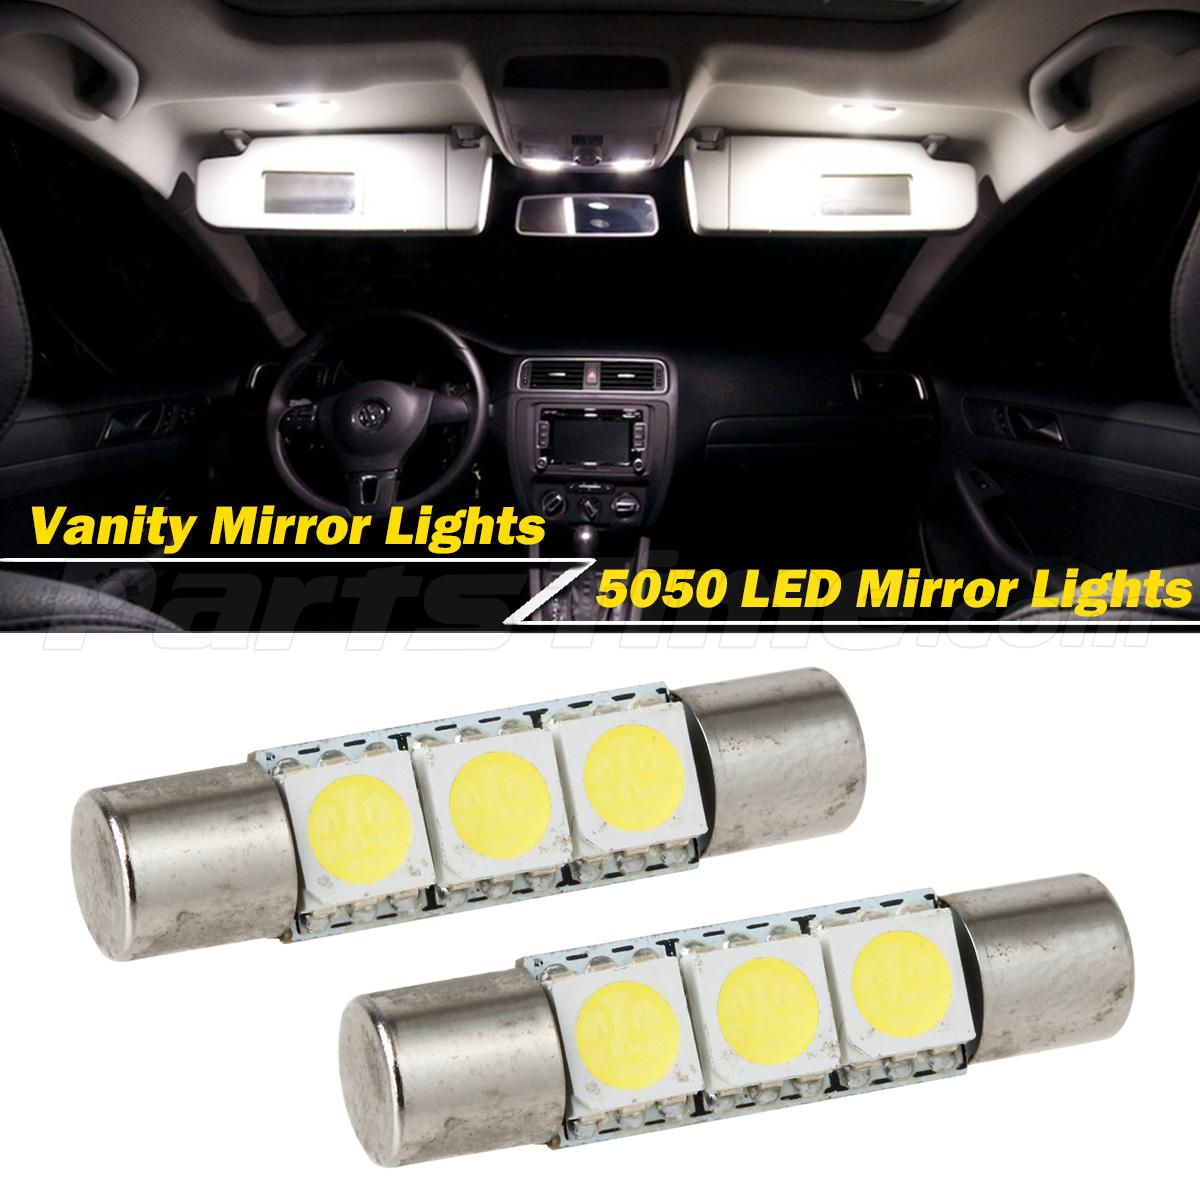 2pcs xenon white 3 smd 6641 led bulb for car sun visor vanity mirror fuse lights ebay. Black Bedroom Furniture Sets. Home Design Ideas